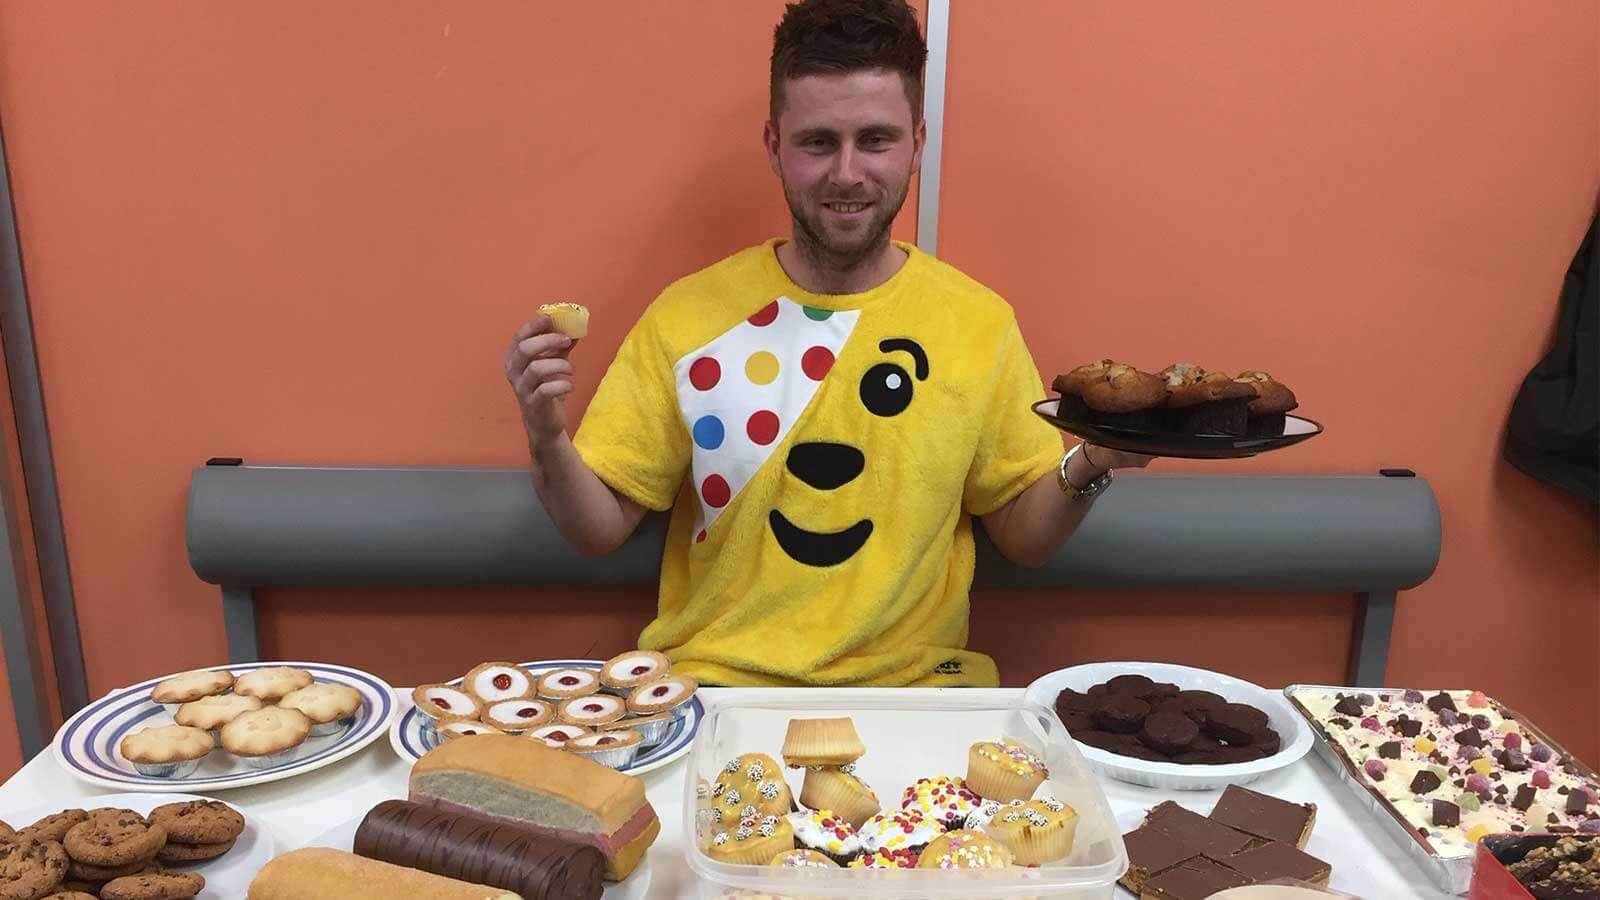 Children in Need at Morningside Pharmaceuticals